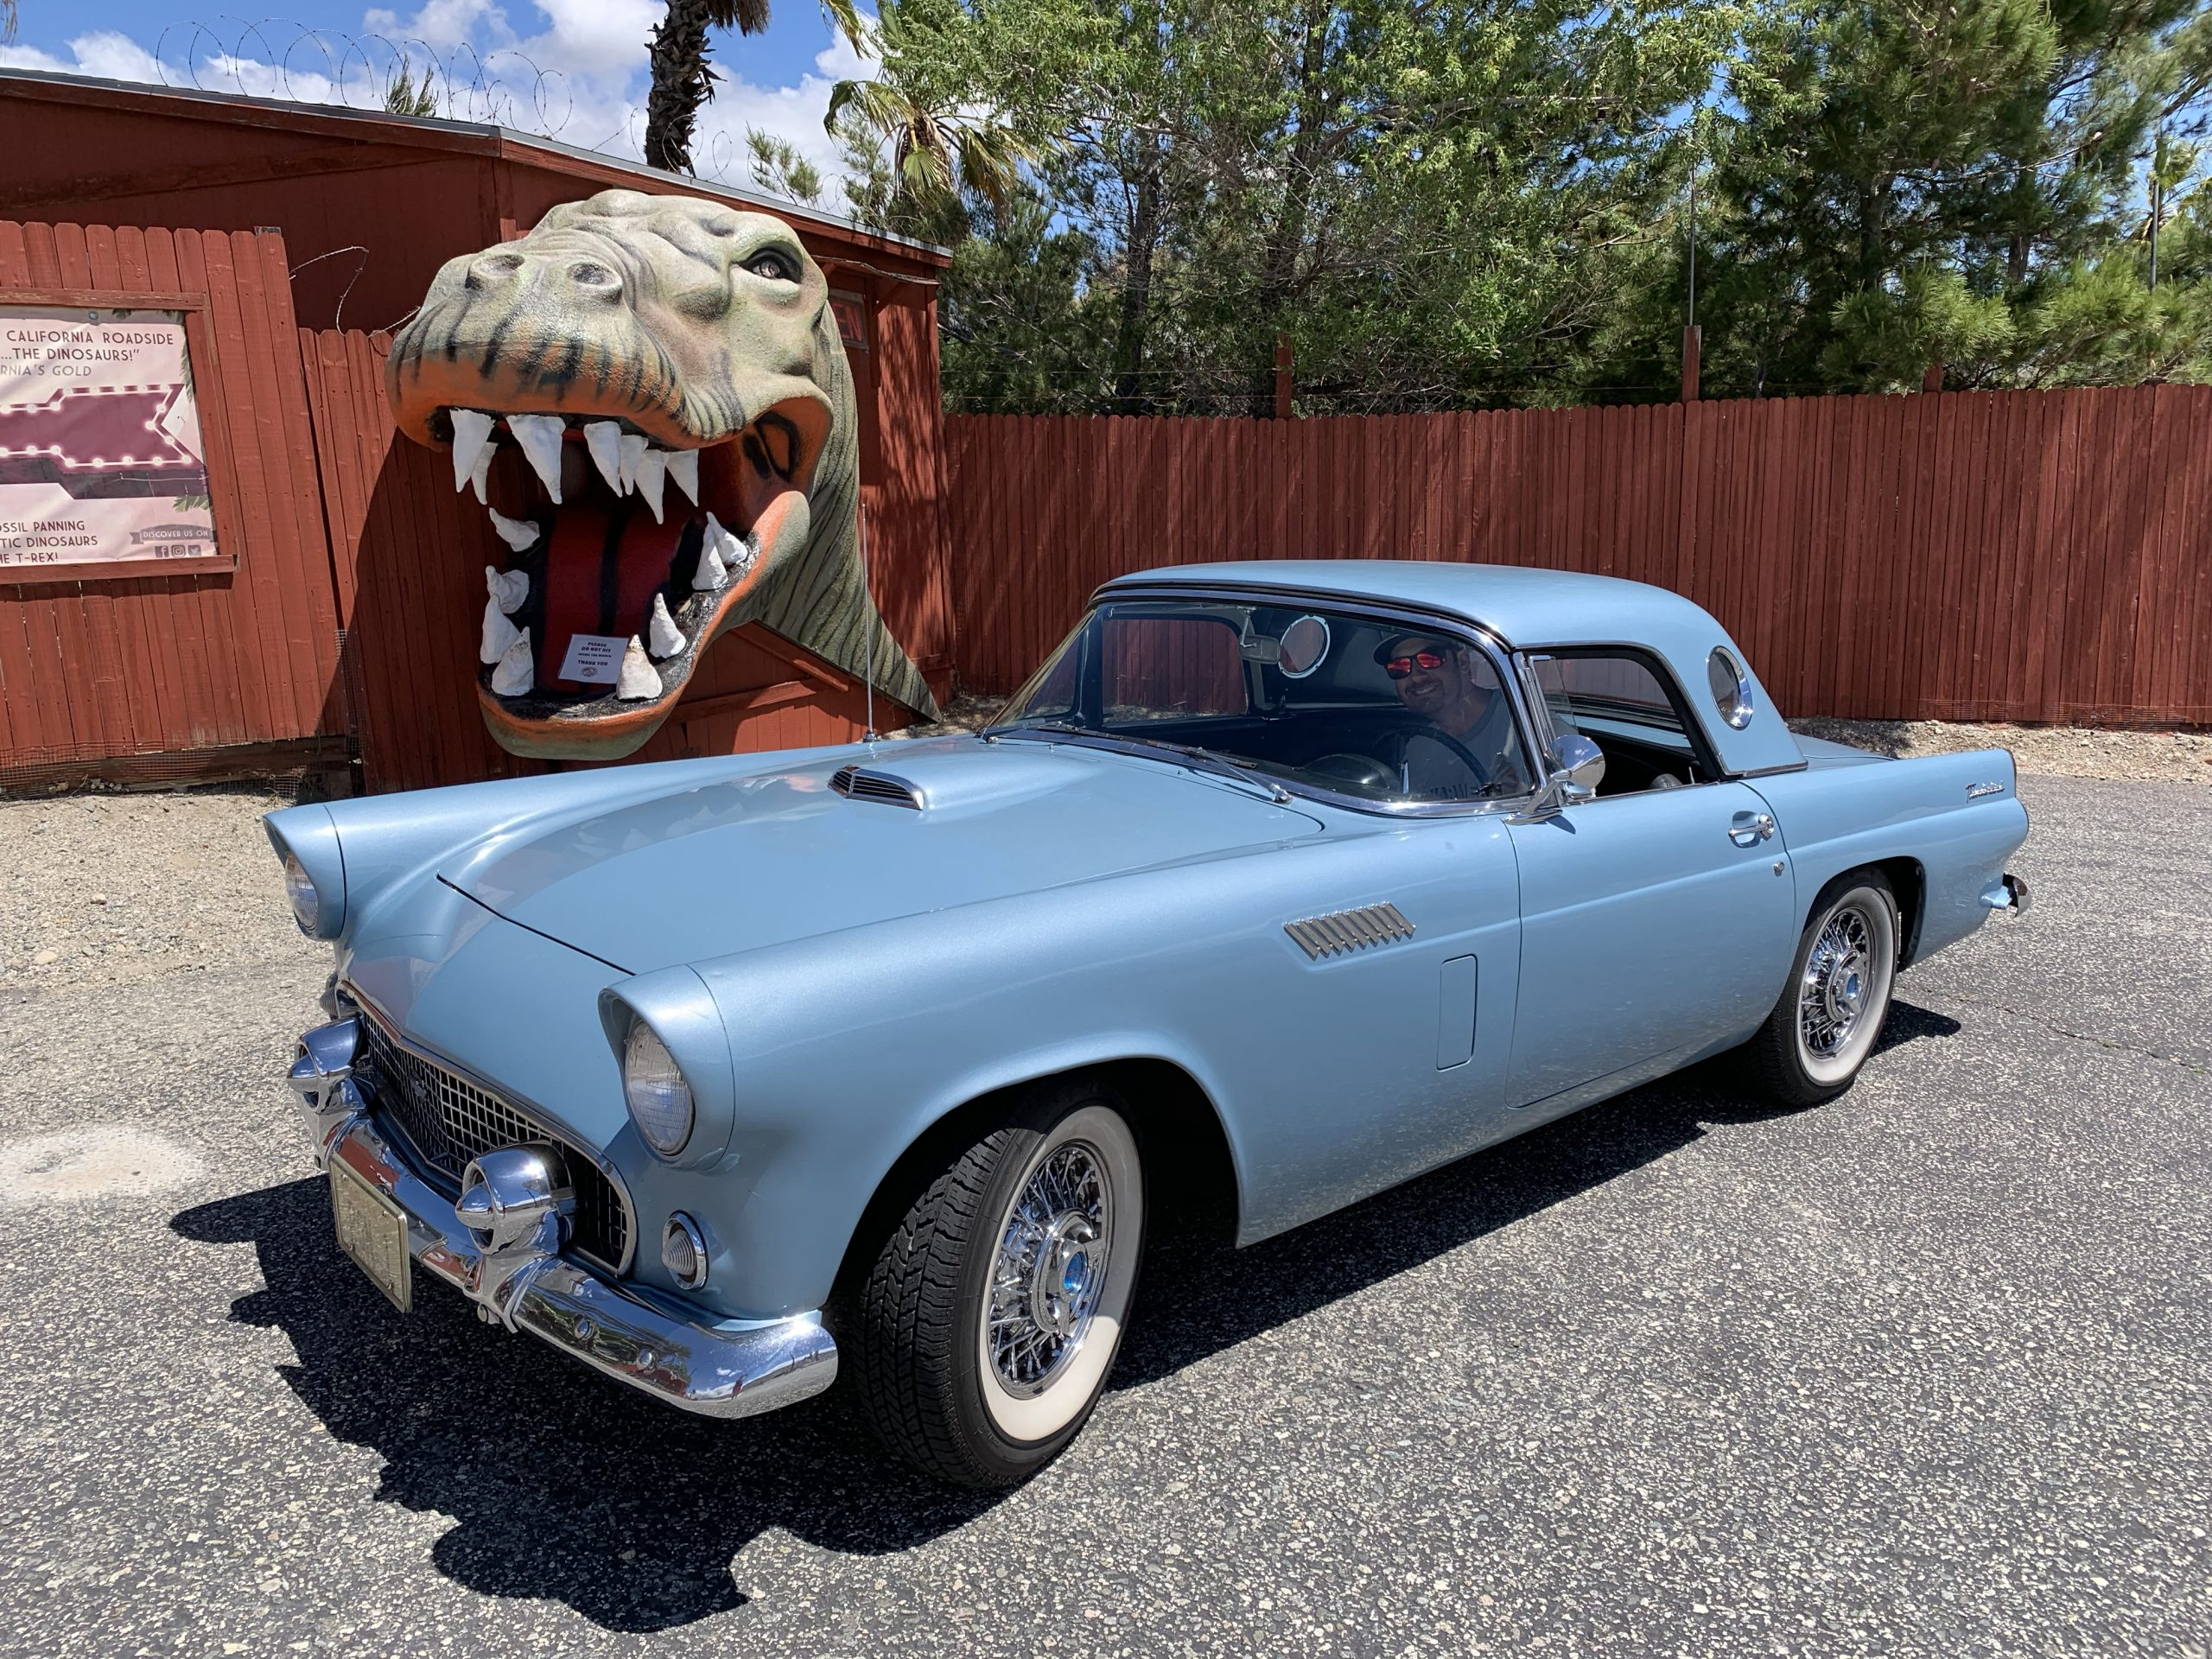 1956 Ford Thunderbird Owner Behind Wheel At Dinosaur Museum